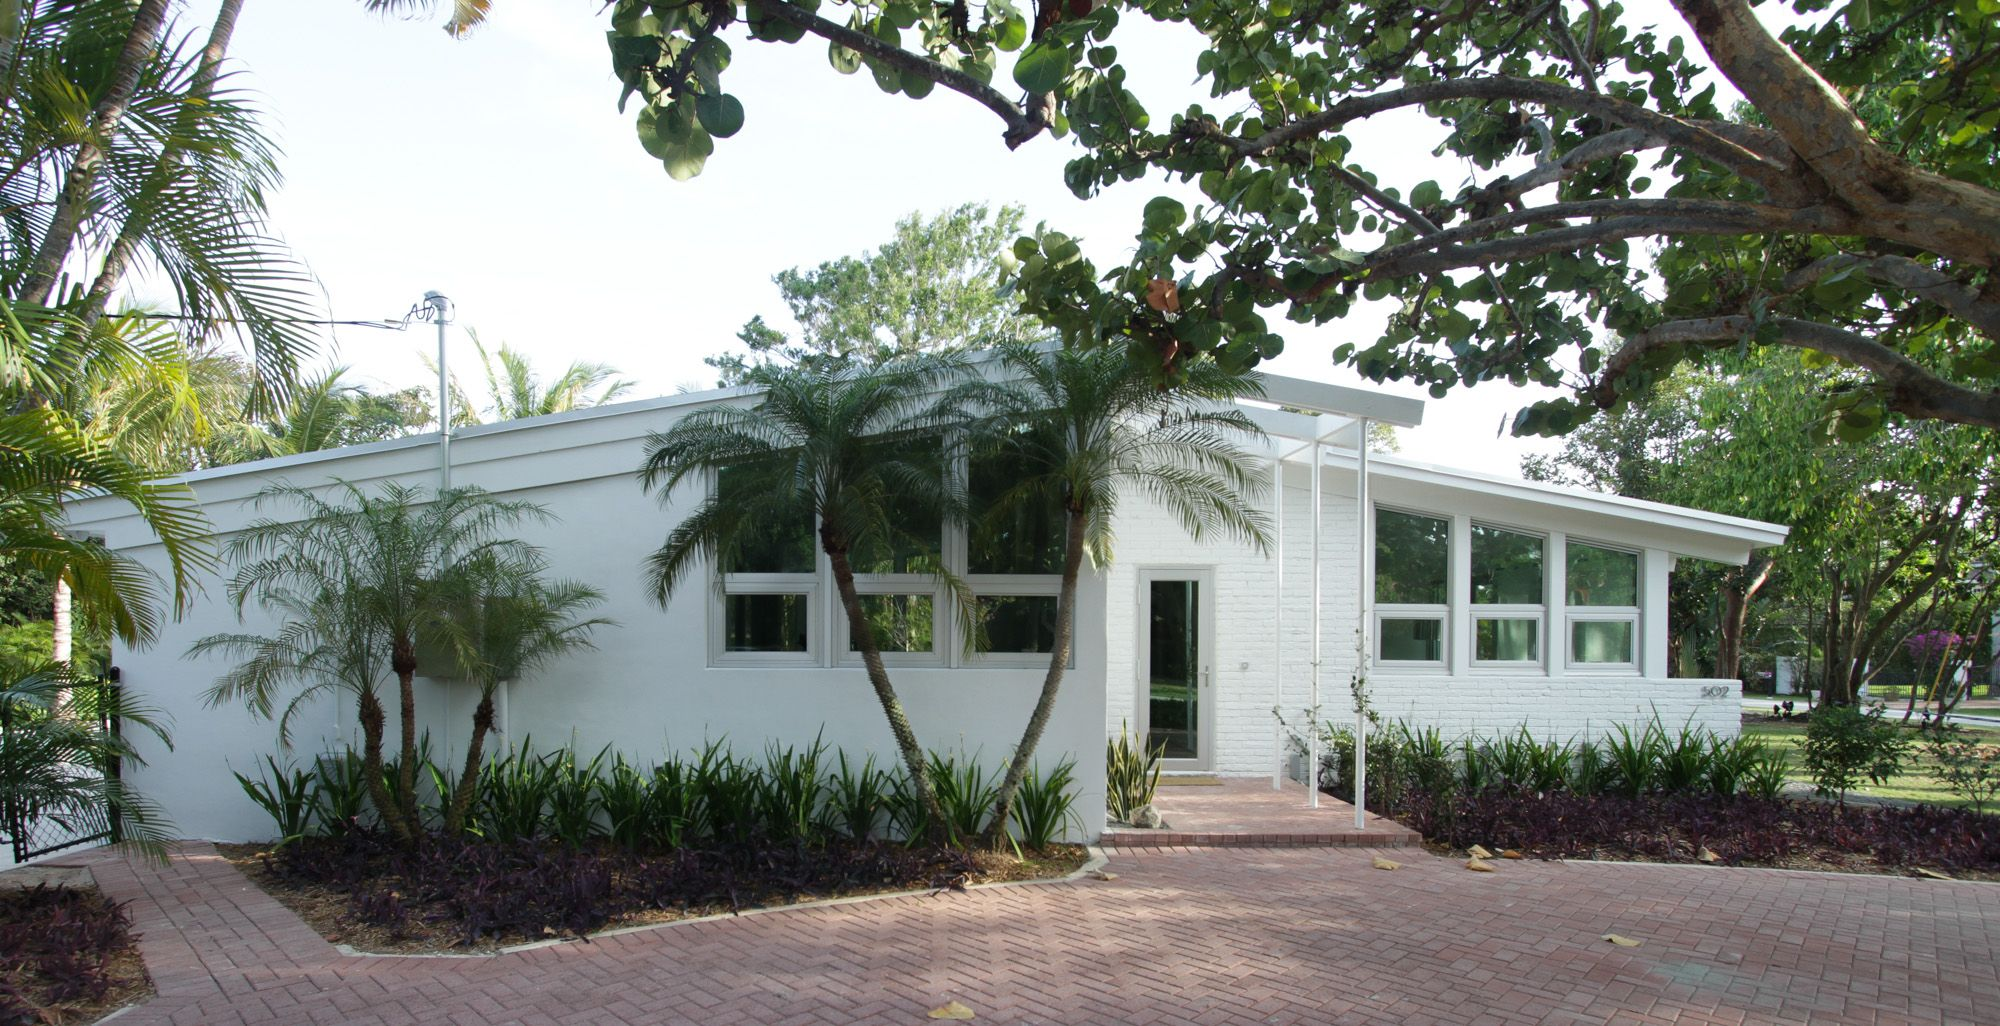 painting mid century modern home exterior paint colors sunroom - Mid Century Modern Home Exterior